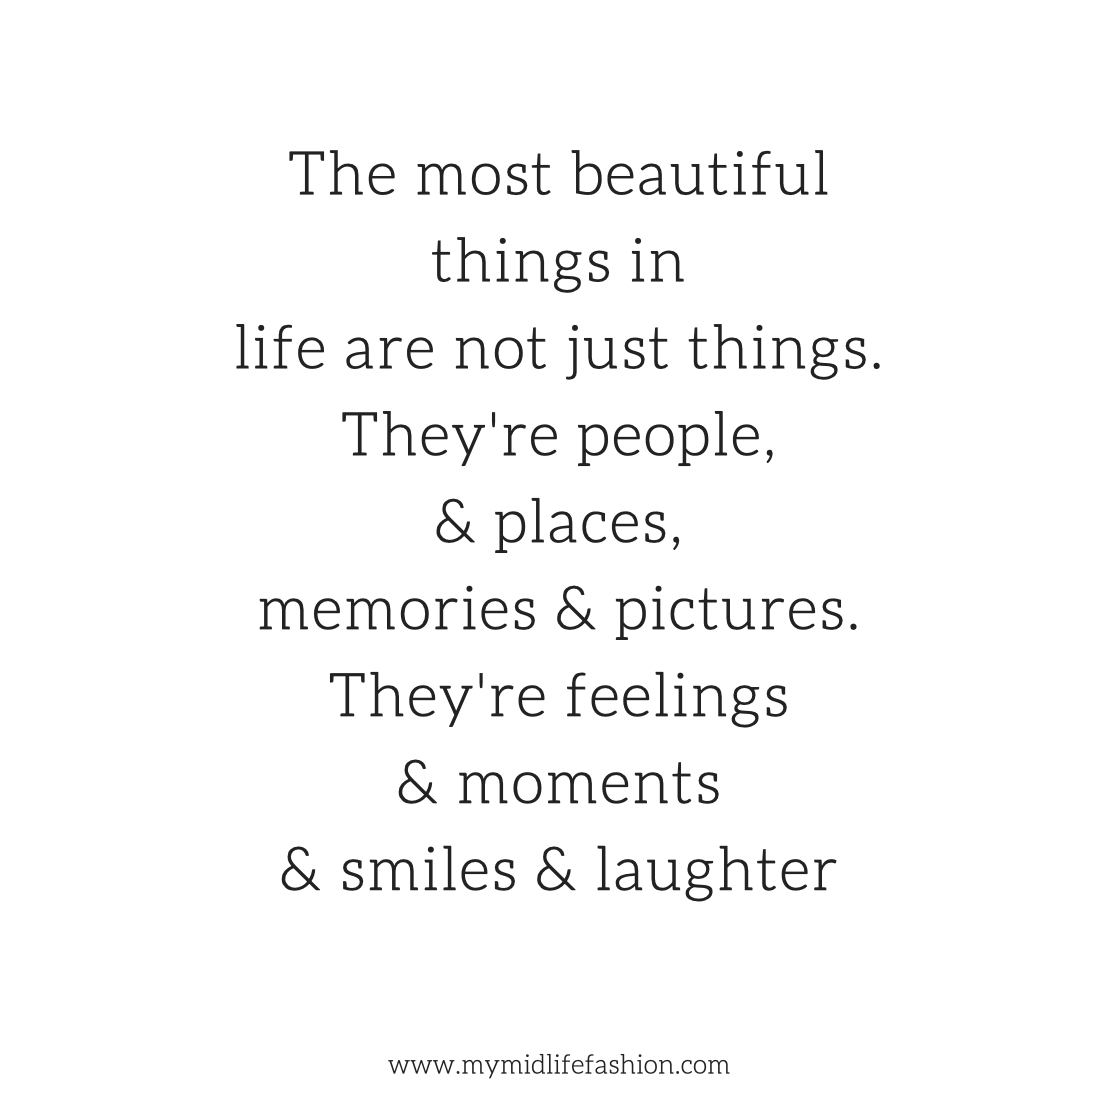 quote quoteoftheday saying sayings quotes sayingstoliveby